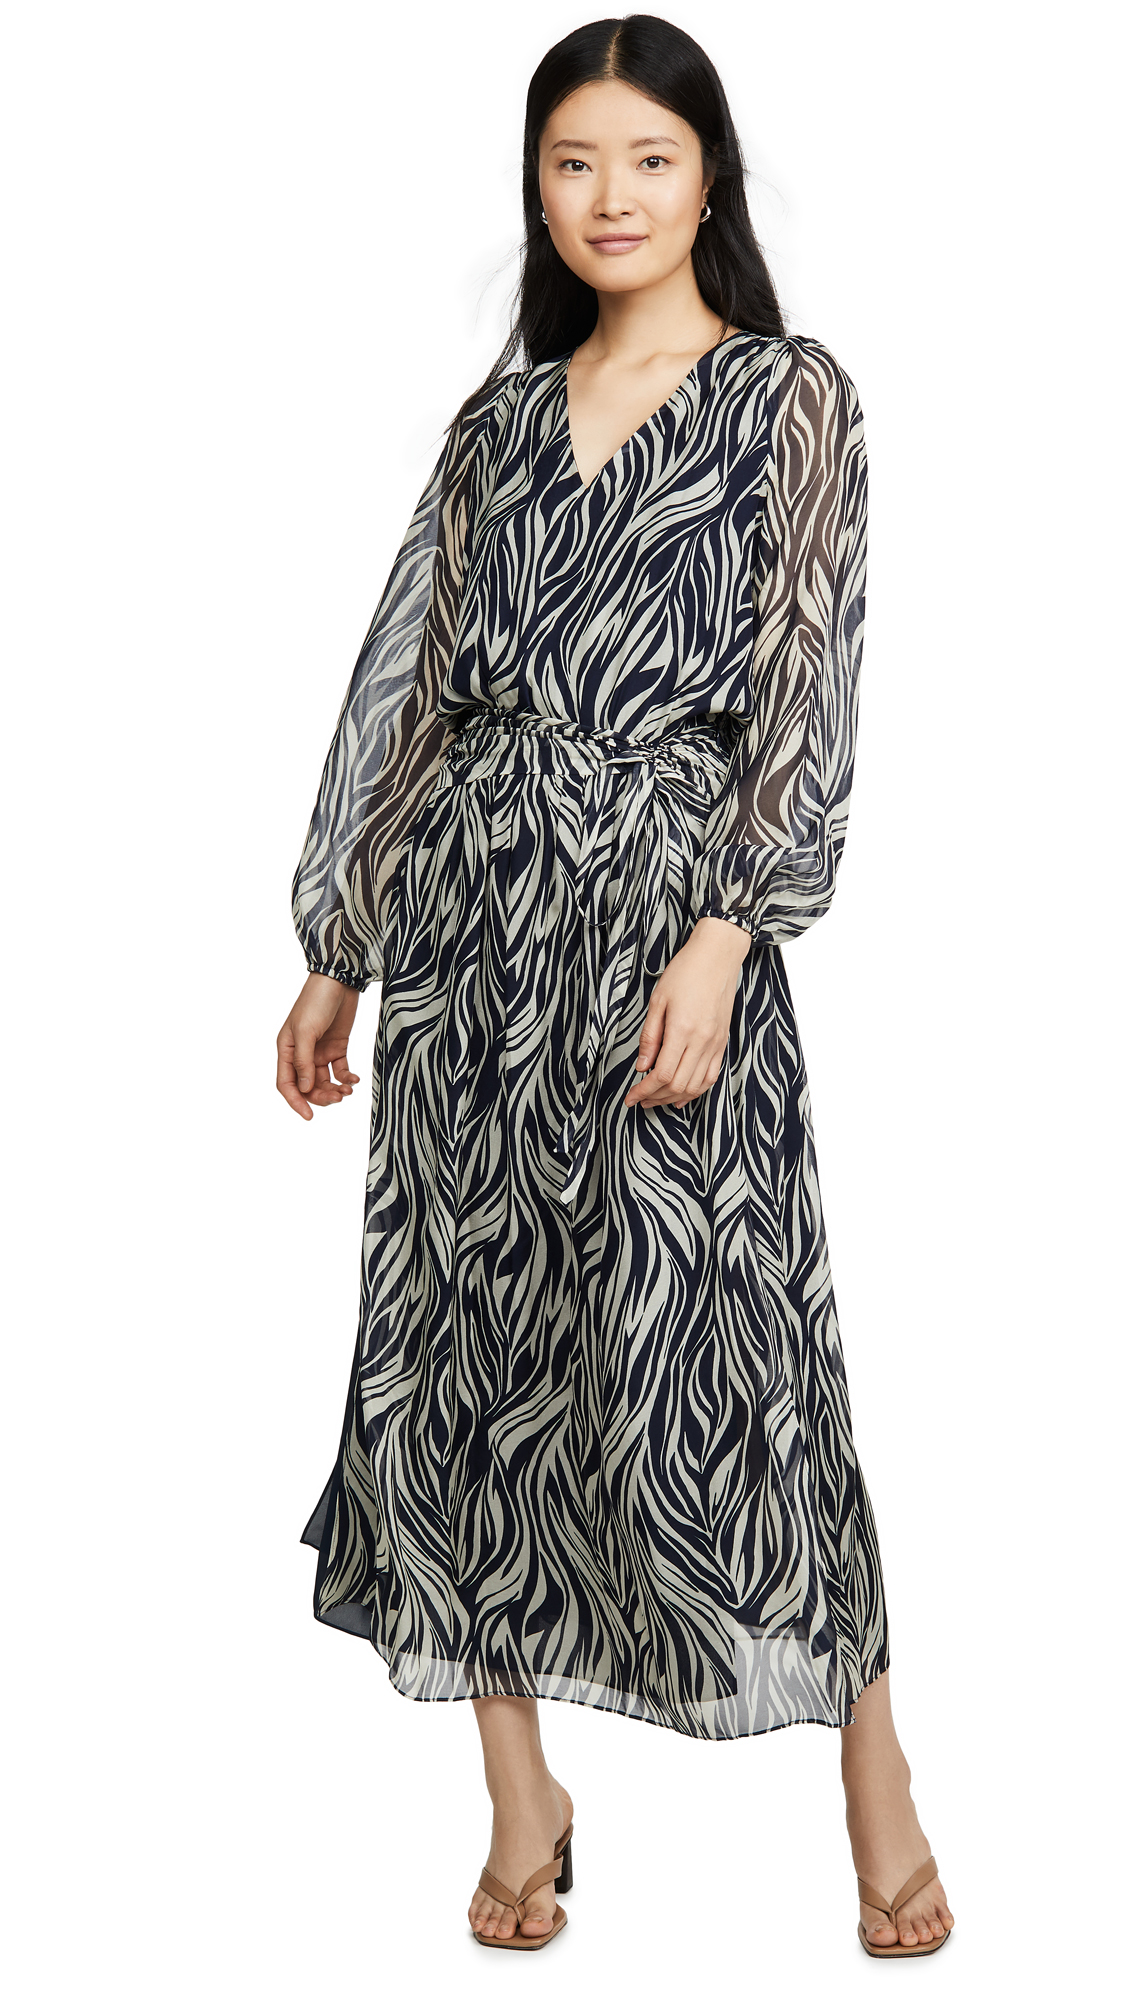 Ramy Brook Printed Marcella Dress - 55% Off Sale